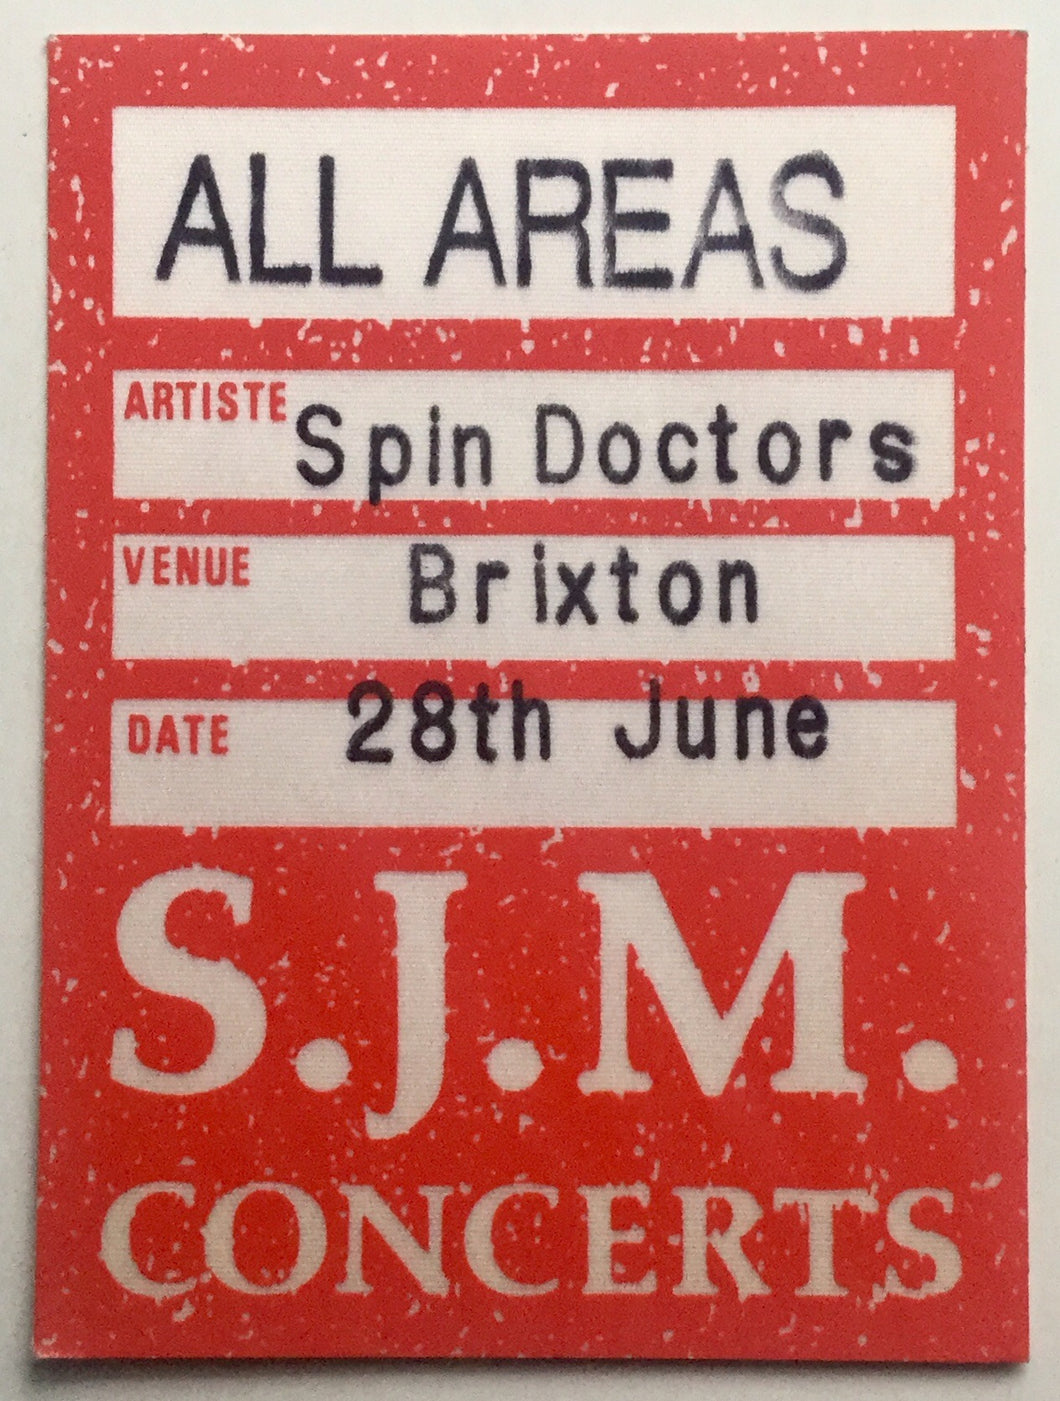 Spin Doctors Original Unused Concert Tour Backstage Pass Ticket Brixton Academy London 28th June 1994